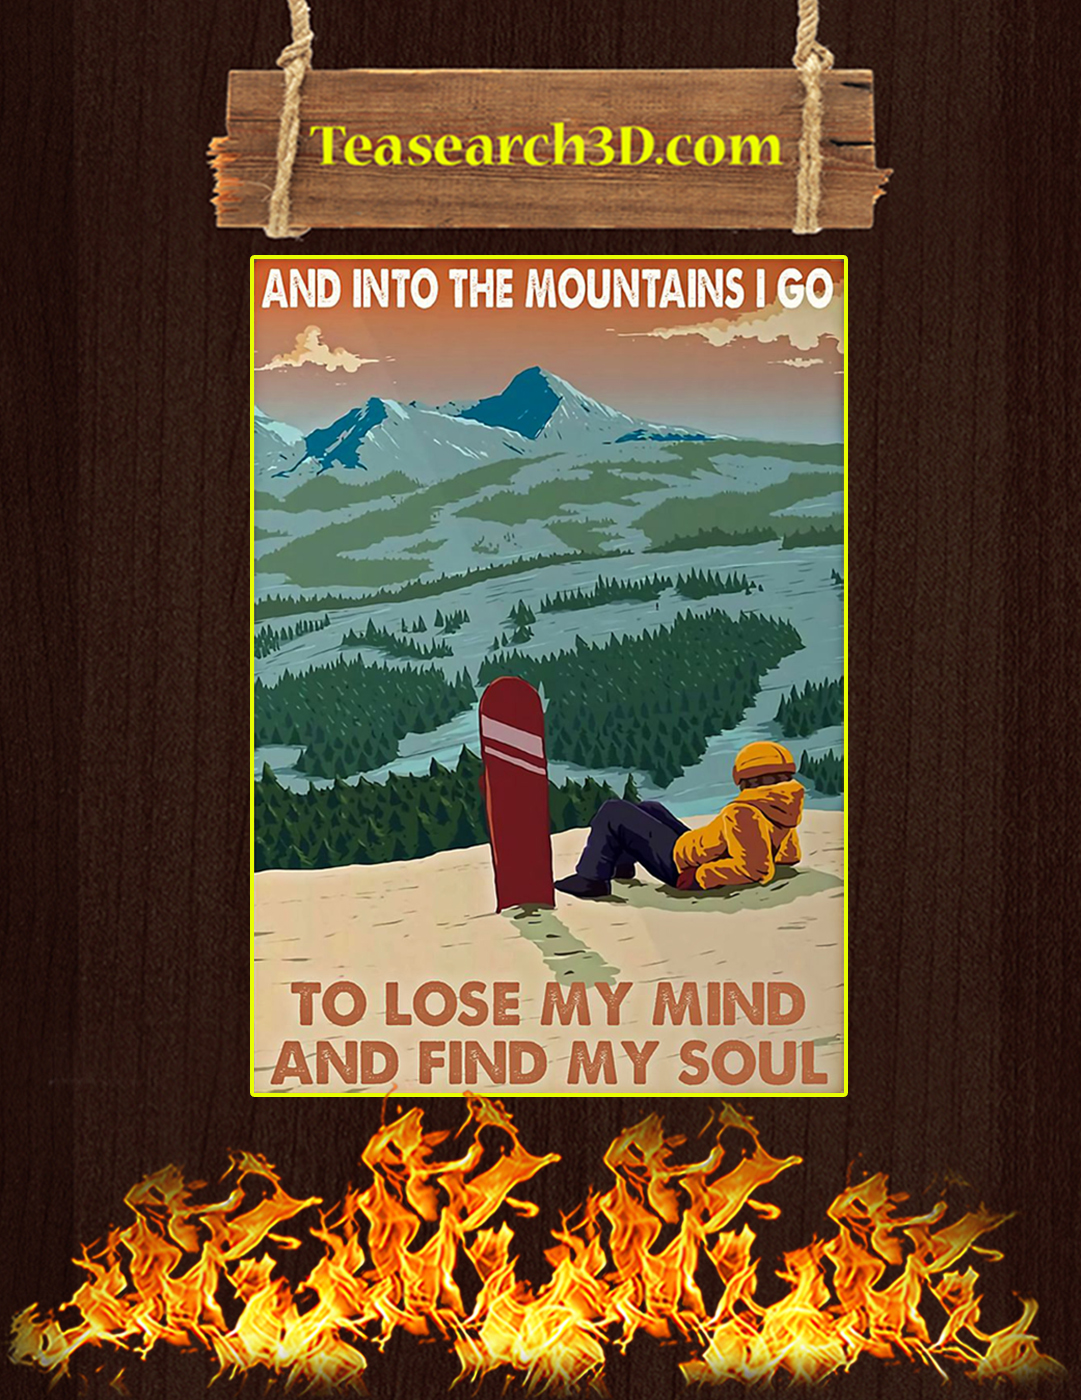 Snowboard And into the mountains I go to lose my mind and find my soul poster A2